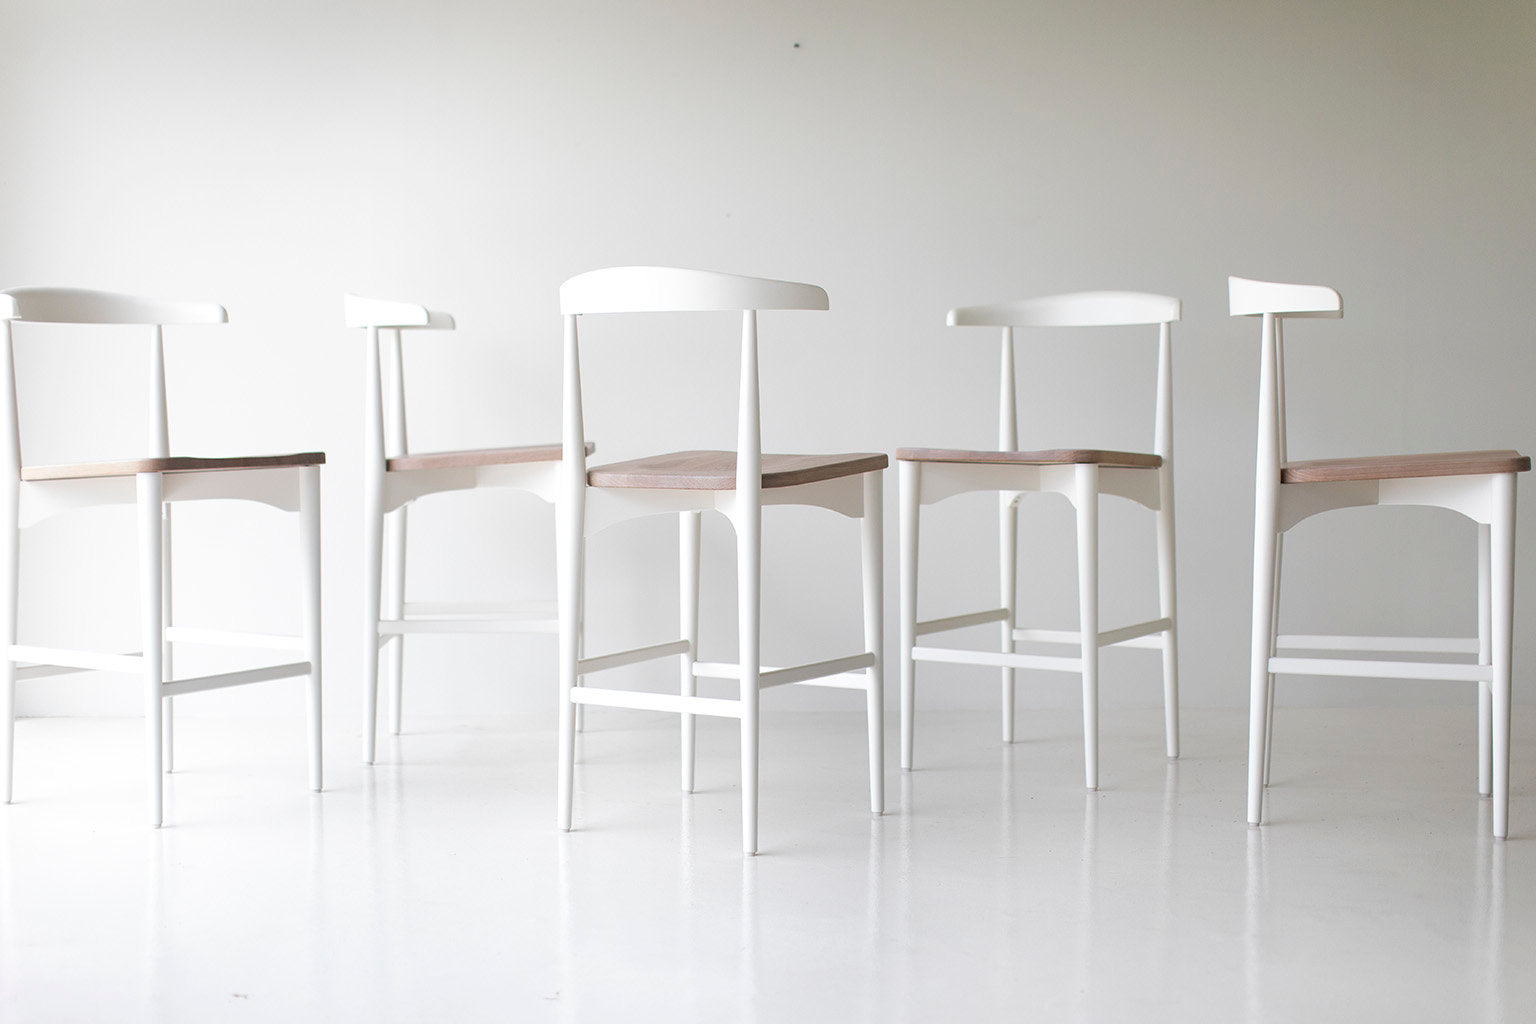 I07A7417-lawrence-peabody-white-bar-stools-02